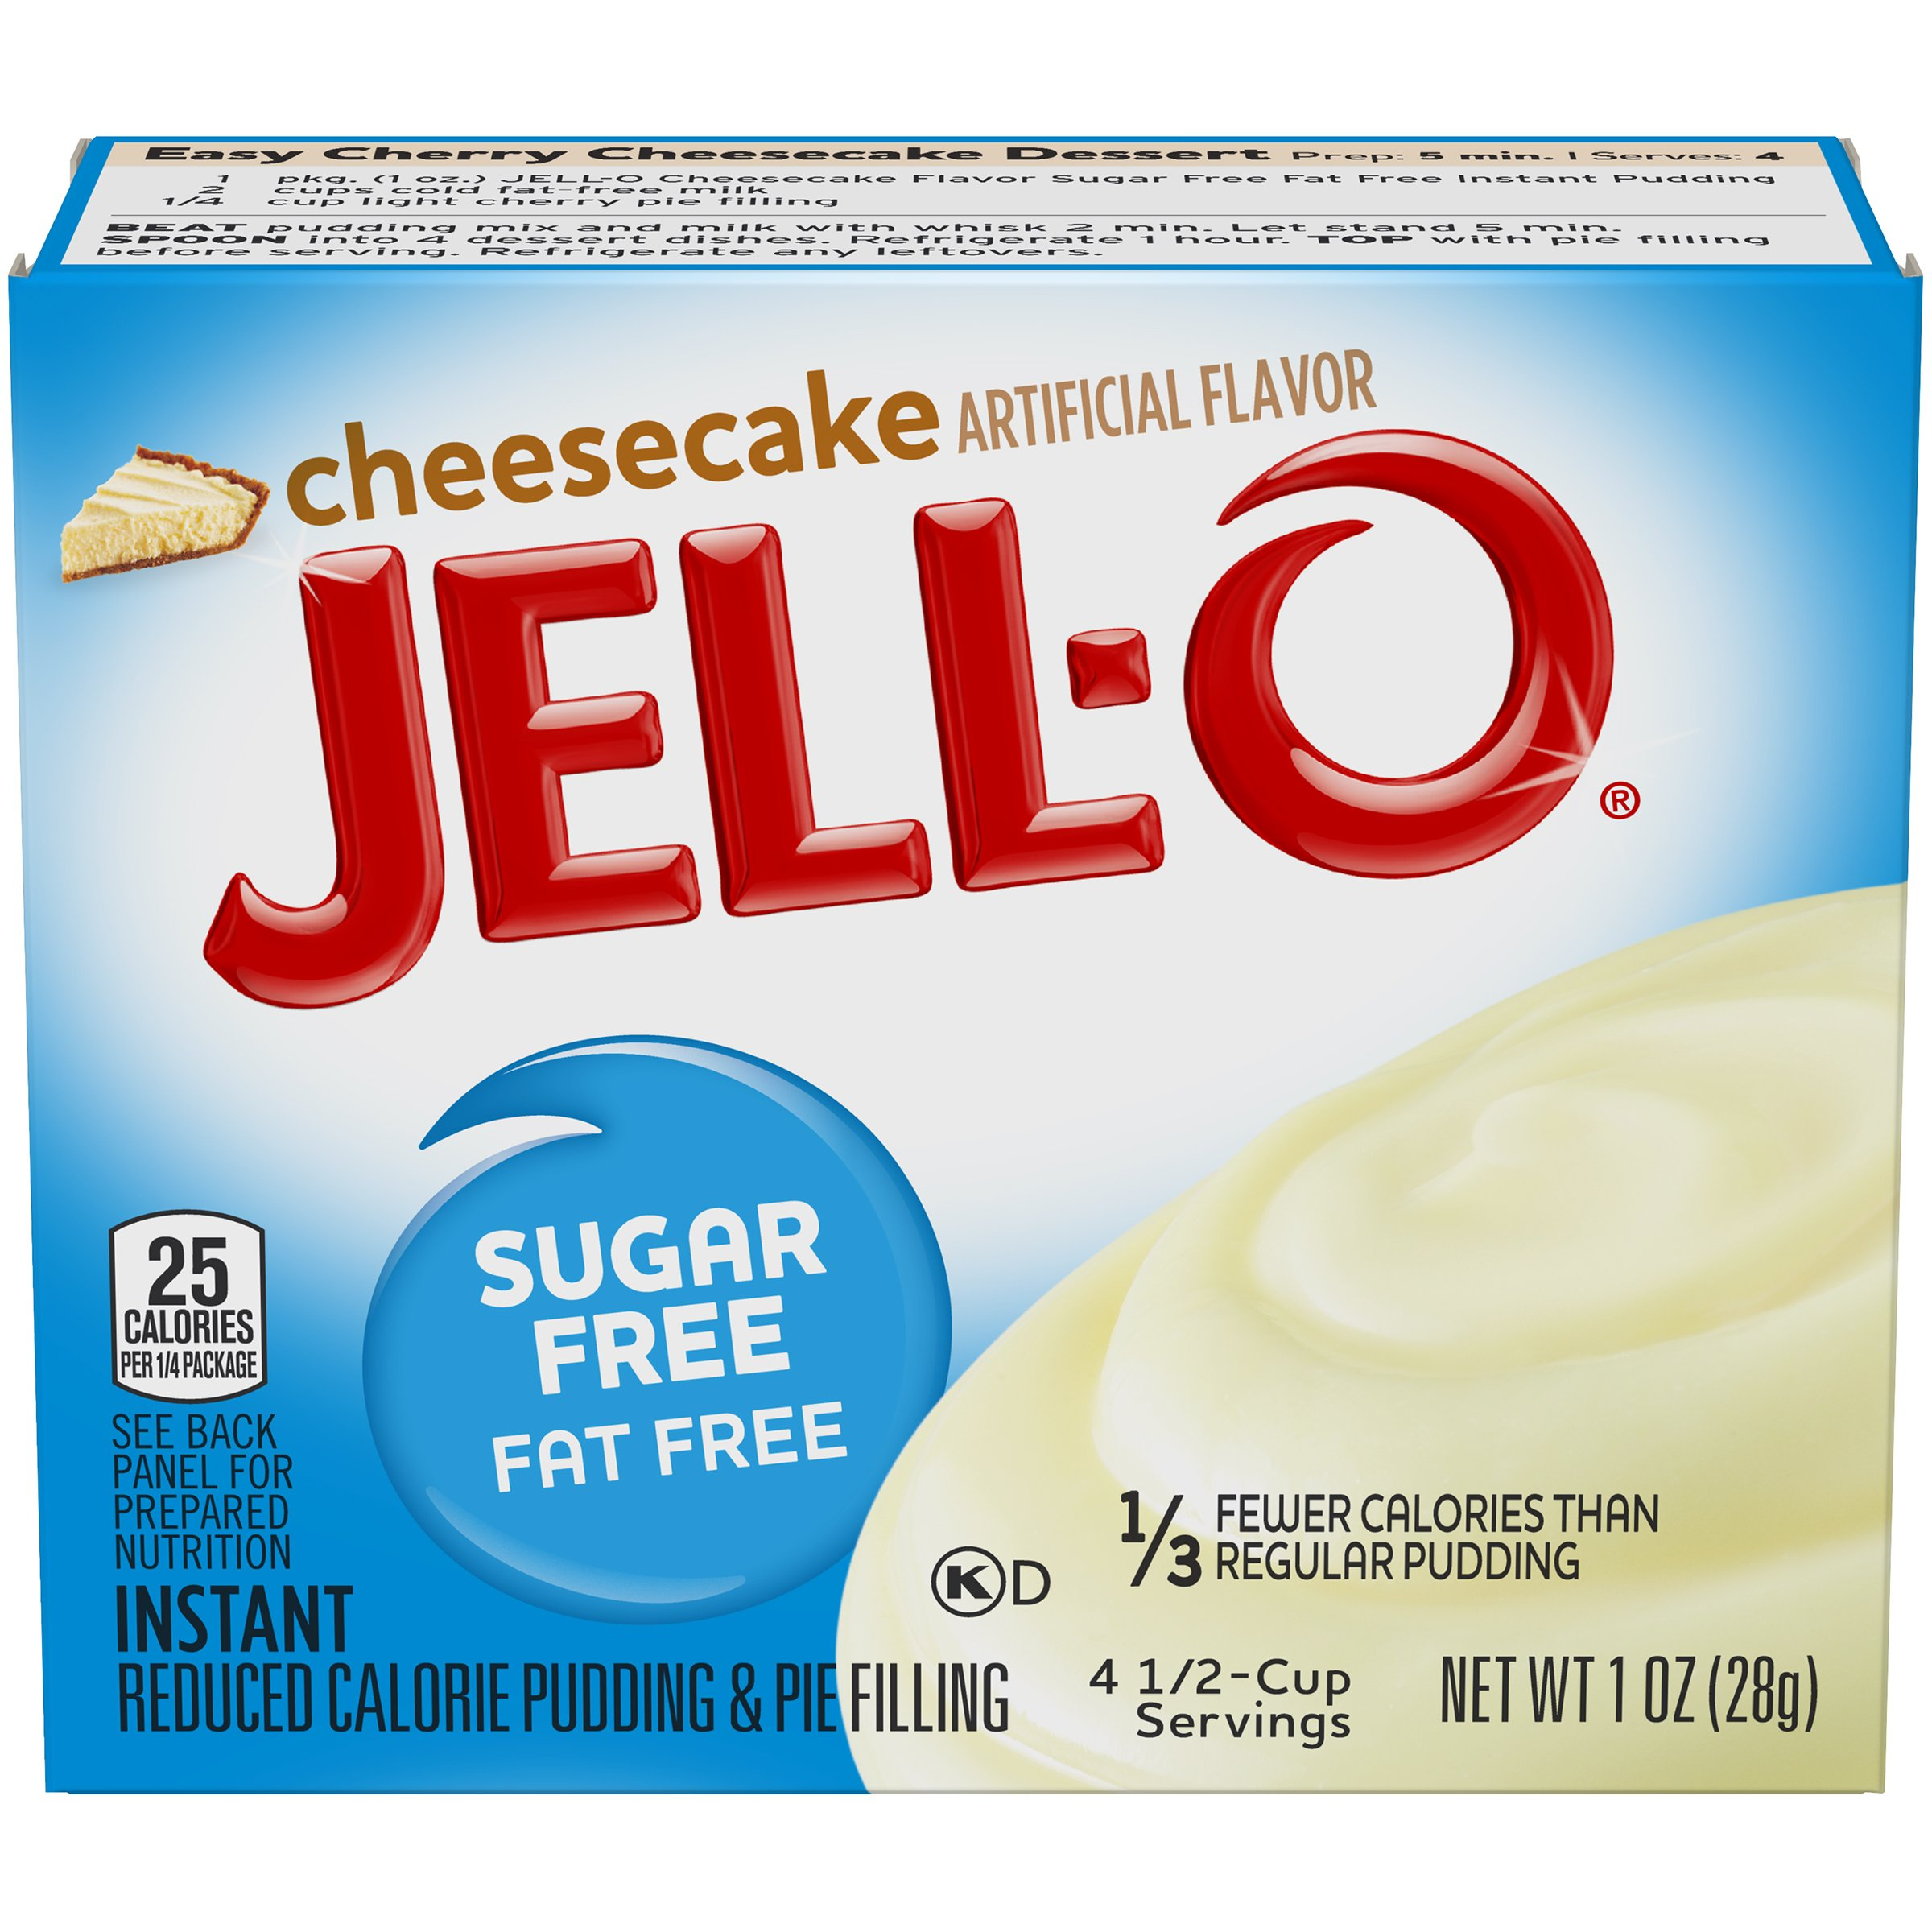 Jell-O Instant Cheesecake Sugar-Free Fat Free Pudding & Pie Filling (1 oz Boxes, Pack of 6)